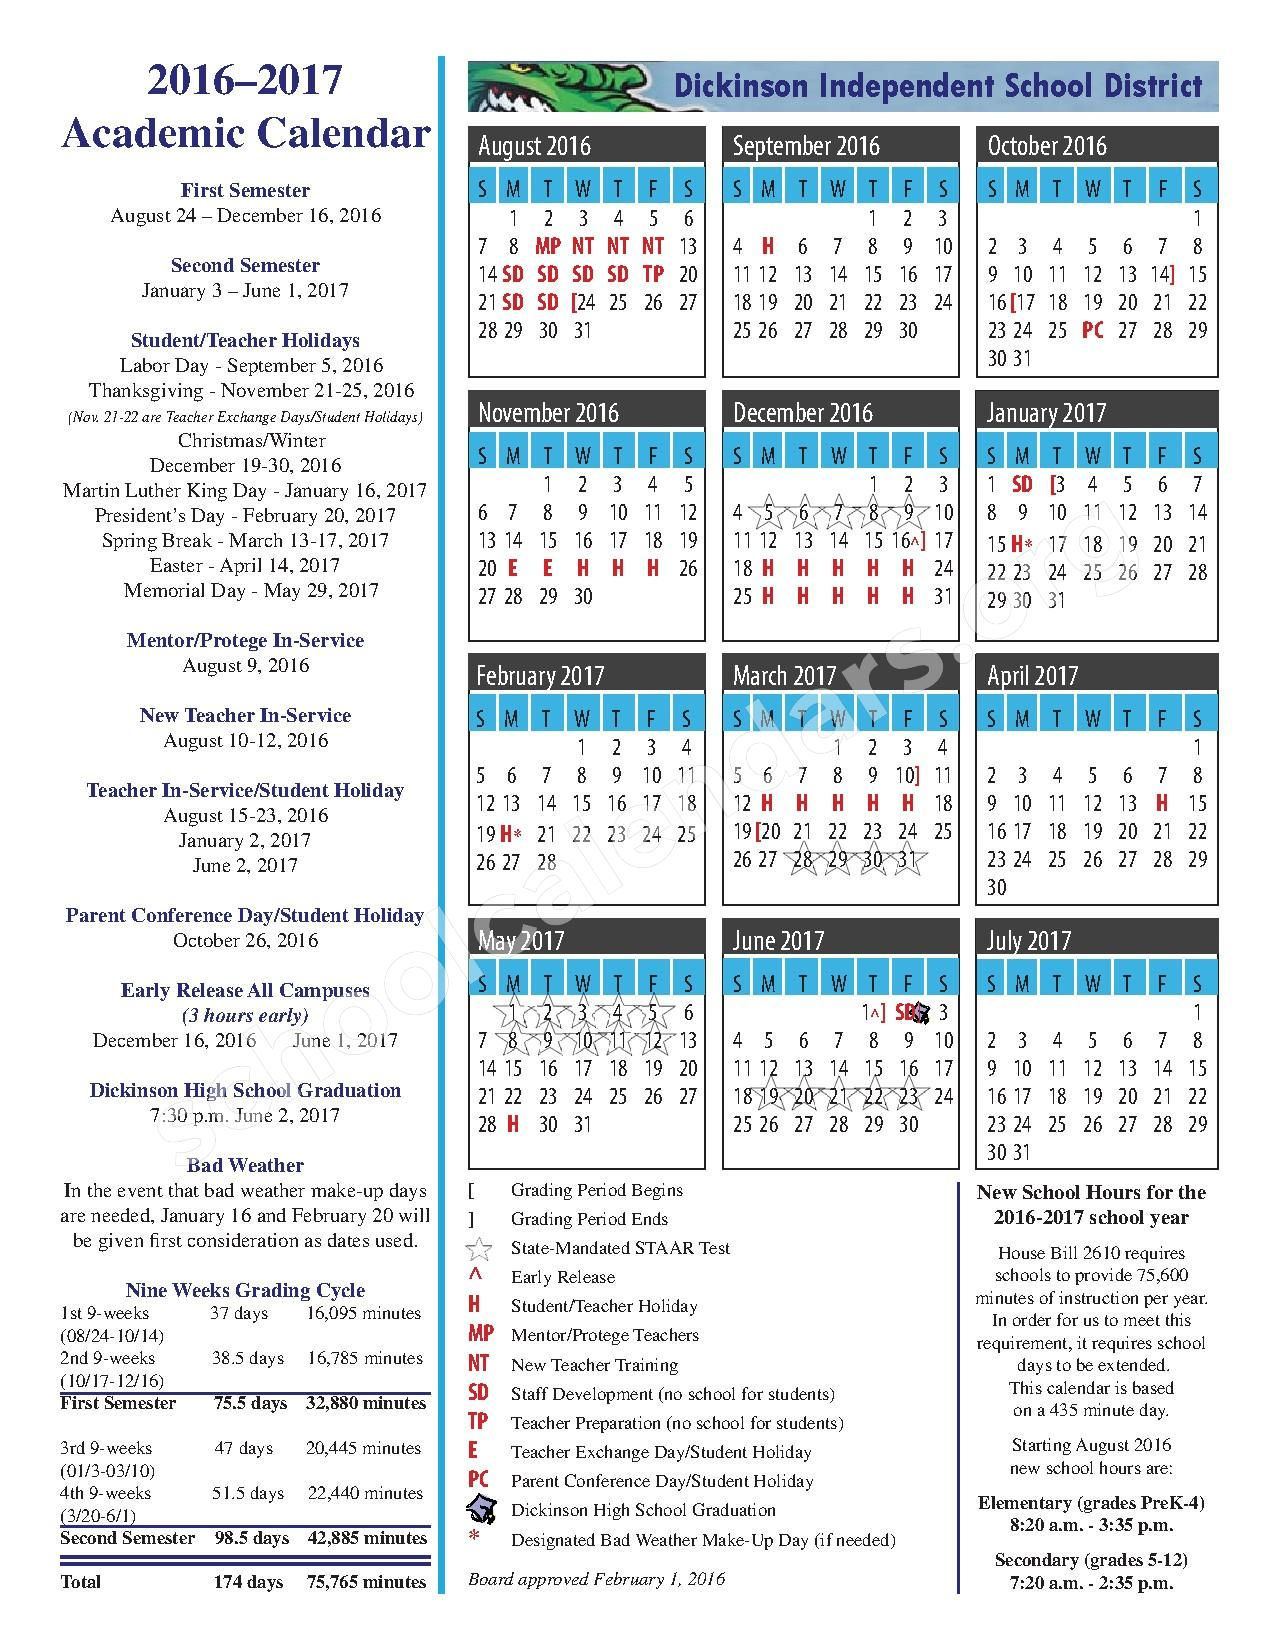 2016 - 2017 School Calendar – Dickinson Independent School District – page 1